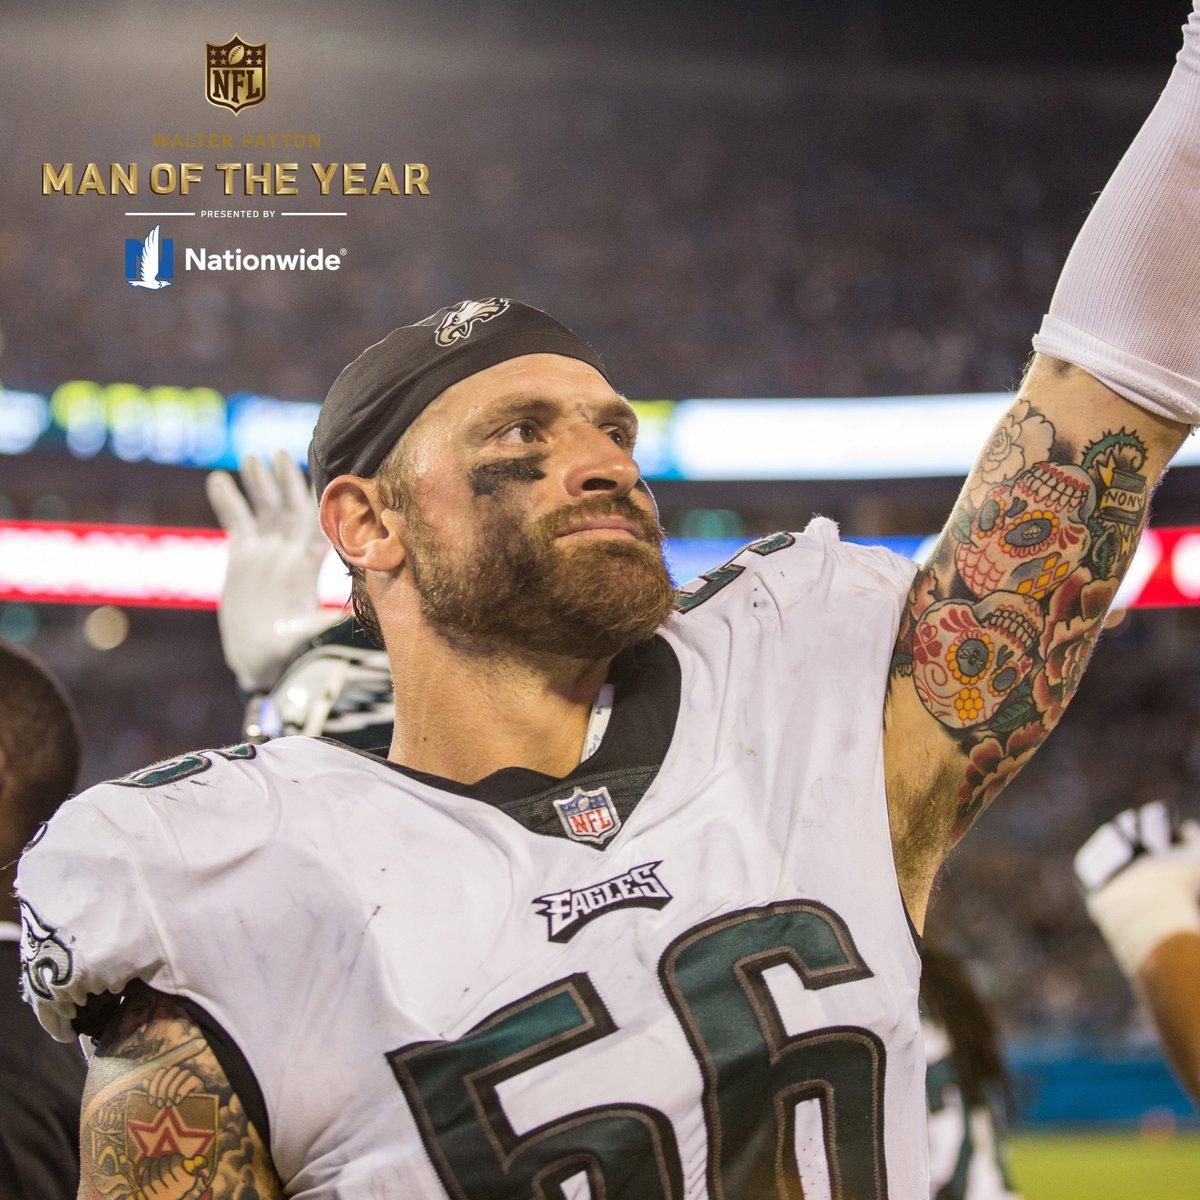 Retweet to congratulate @JOEL9ONE on being named our 2018 Walter Payton Man of the Year nominee!  @Nationwide | #WPMOYChallengeLong<br>http://pic.twitter.com/IwNCRMZ3HD